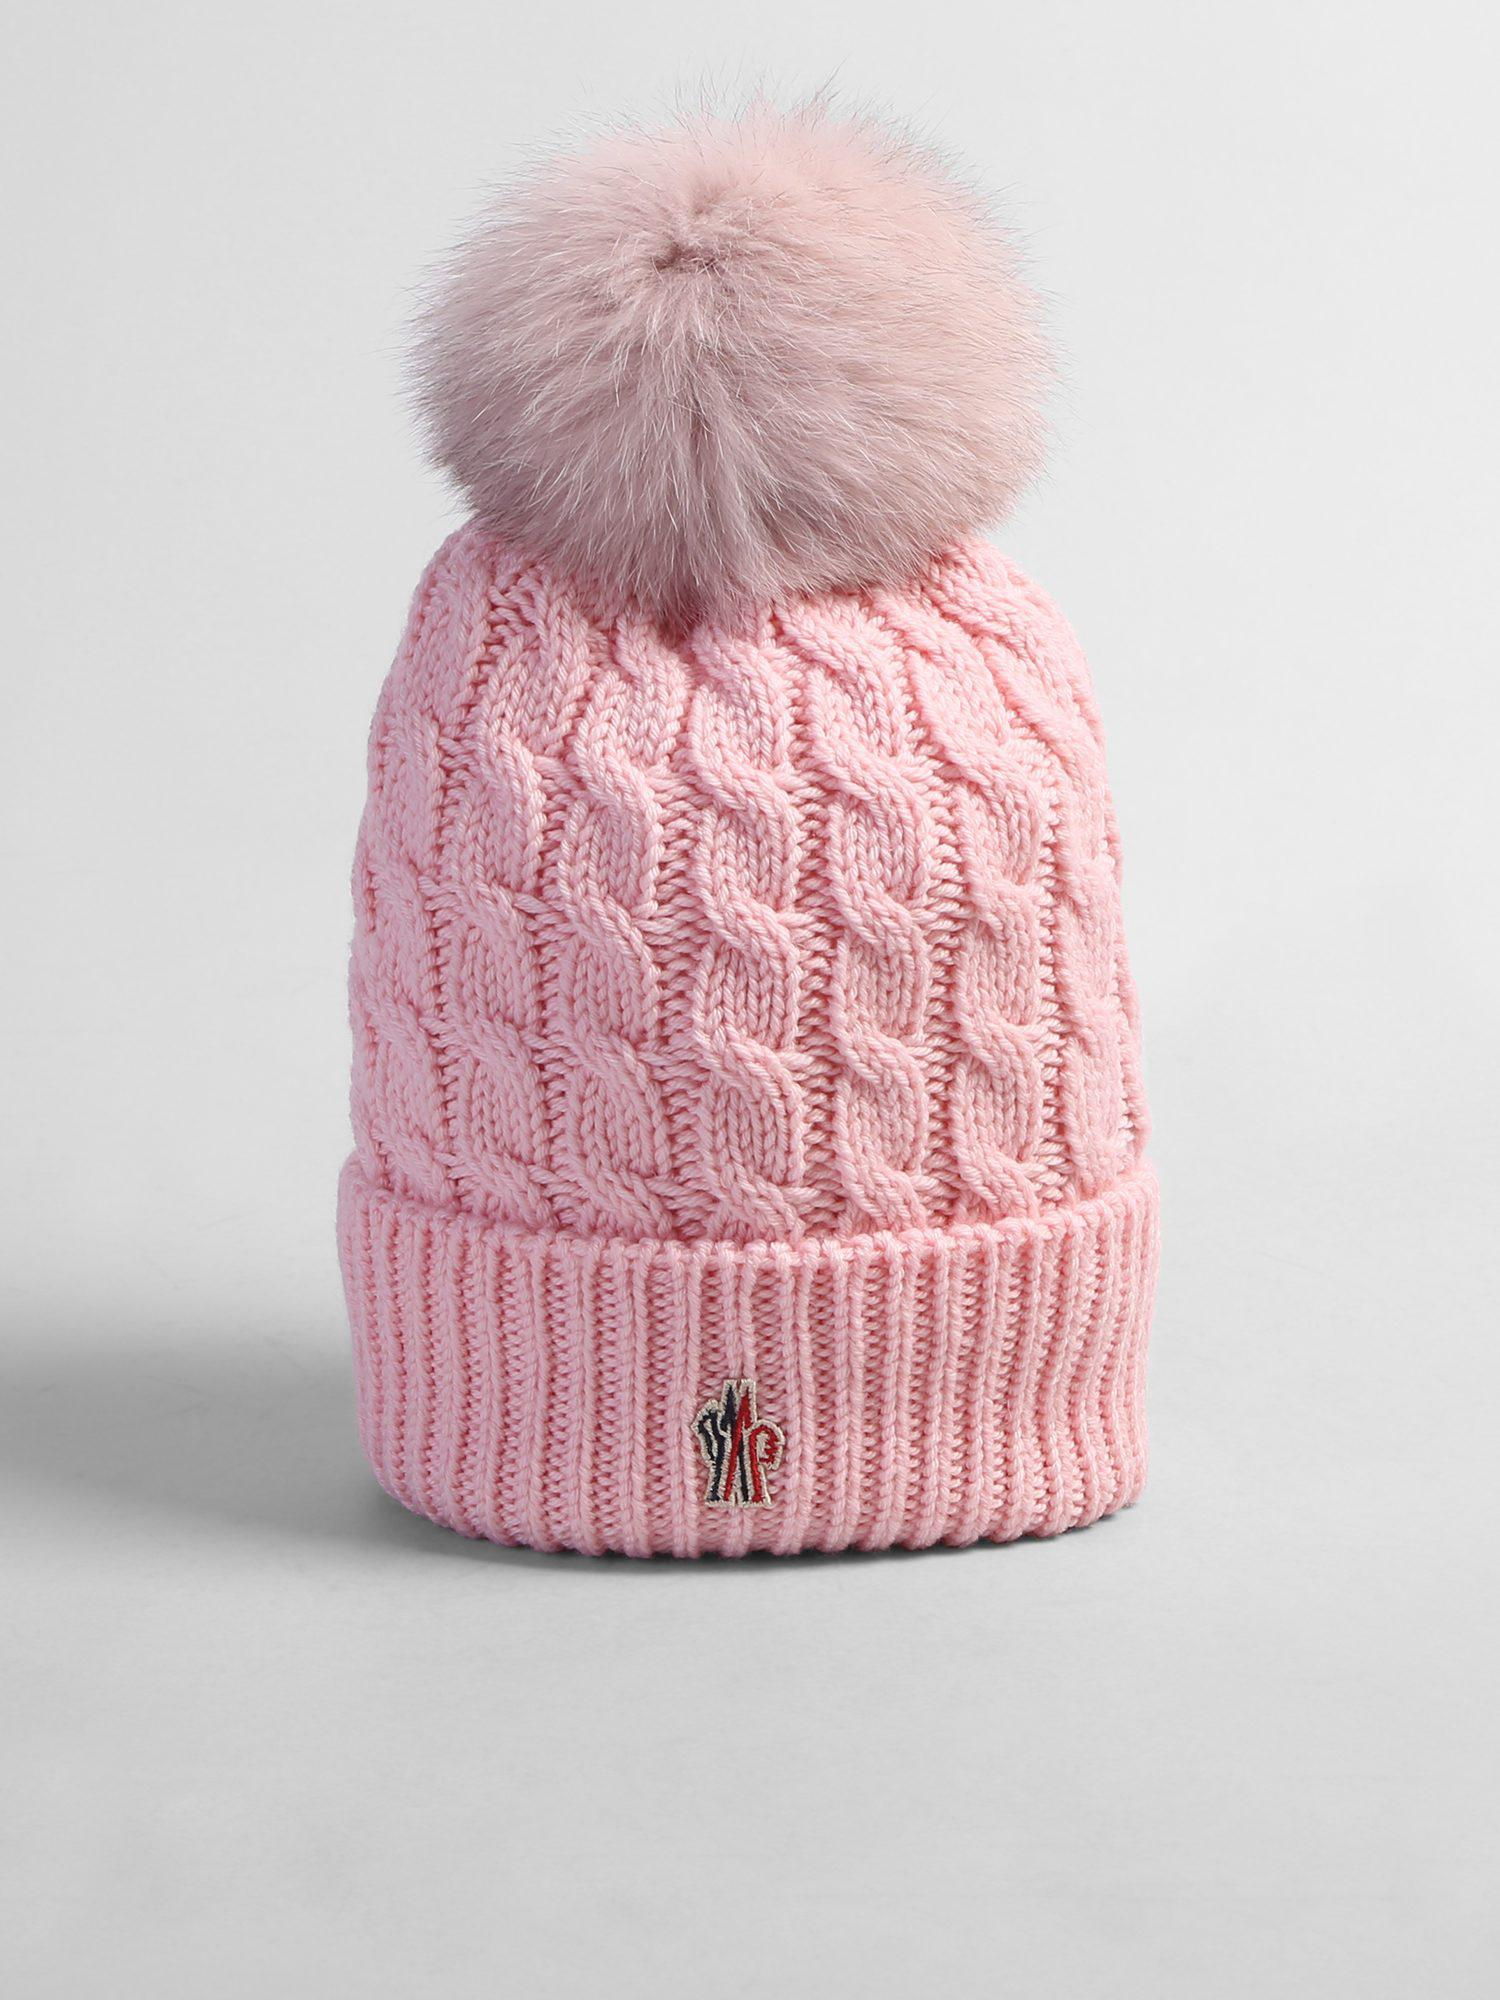 c82dae8db84 Moncler Grenoble Virgin Wool Beanie in Pink - Lyst